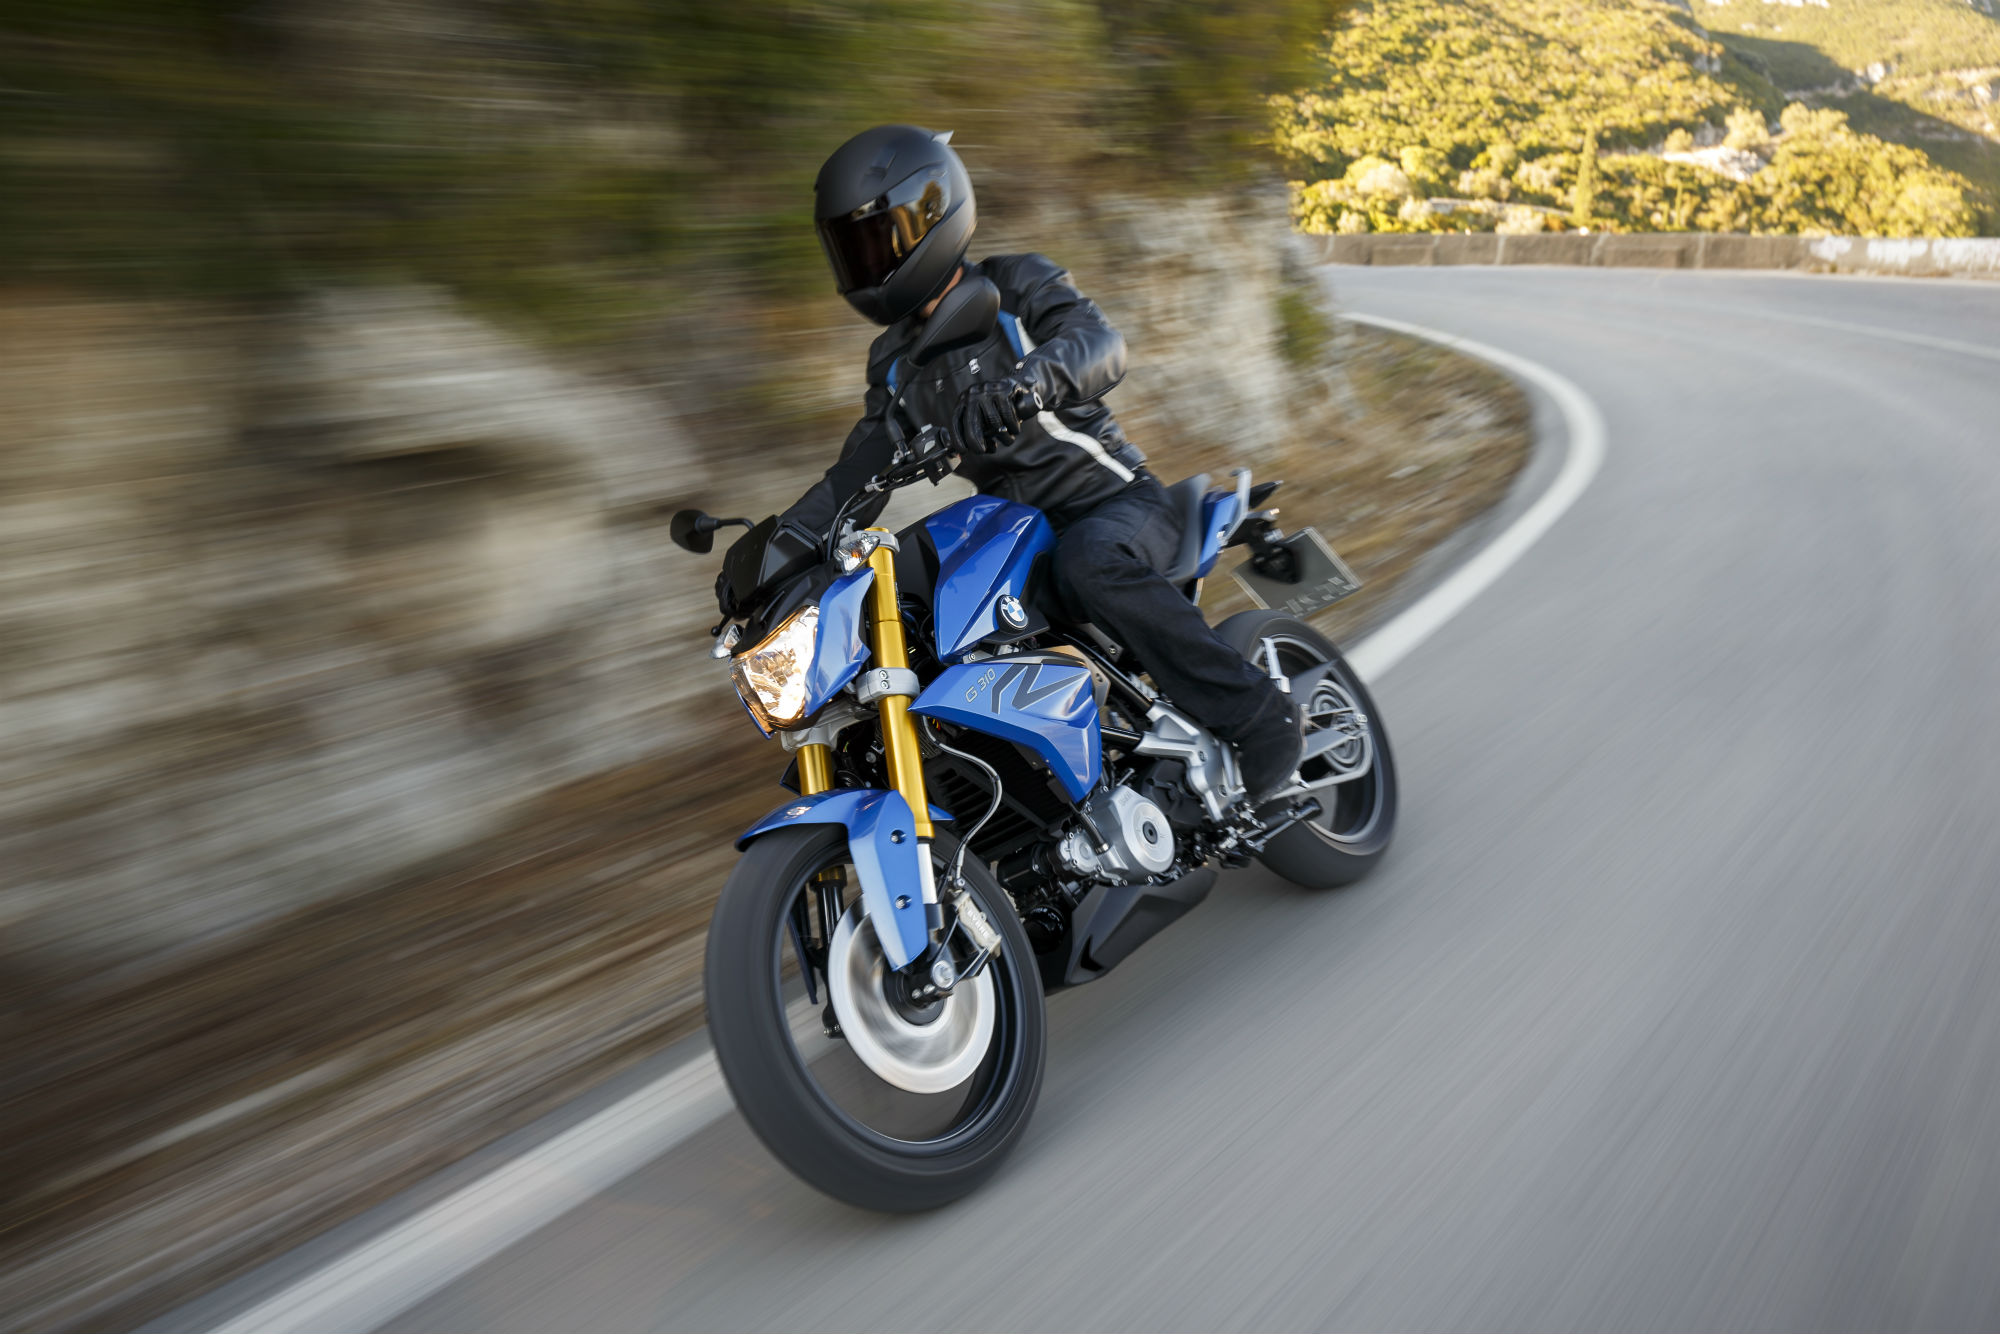 BMW G 310 R review | UK road test | Visordown